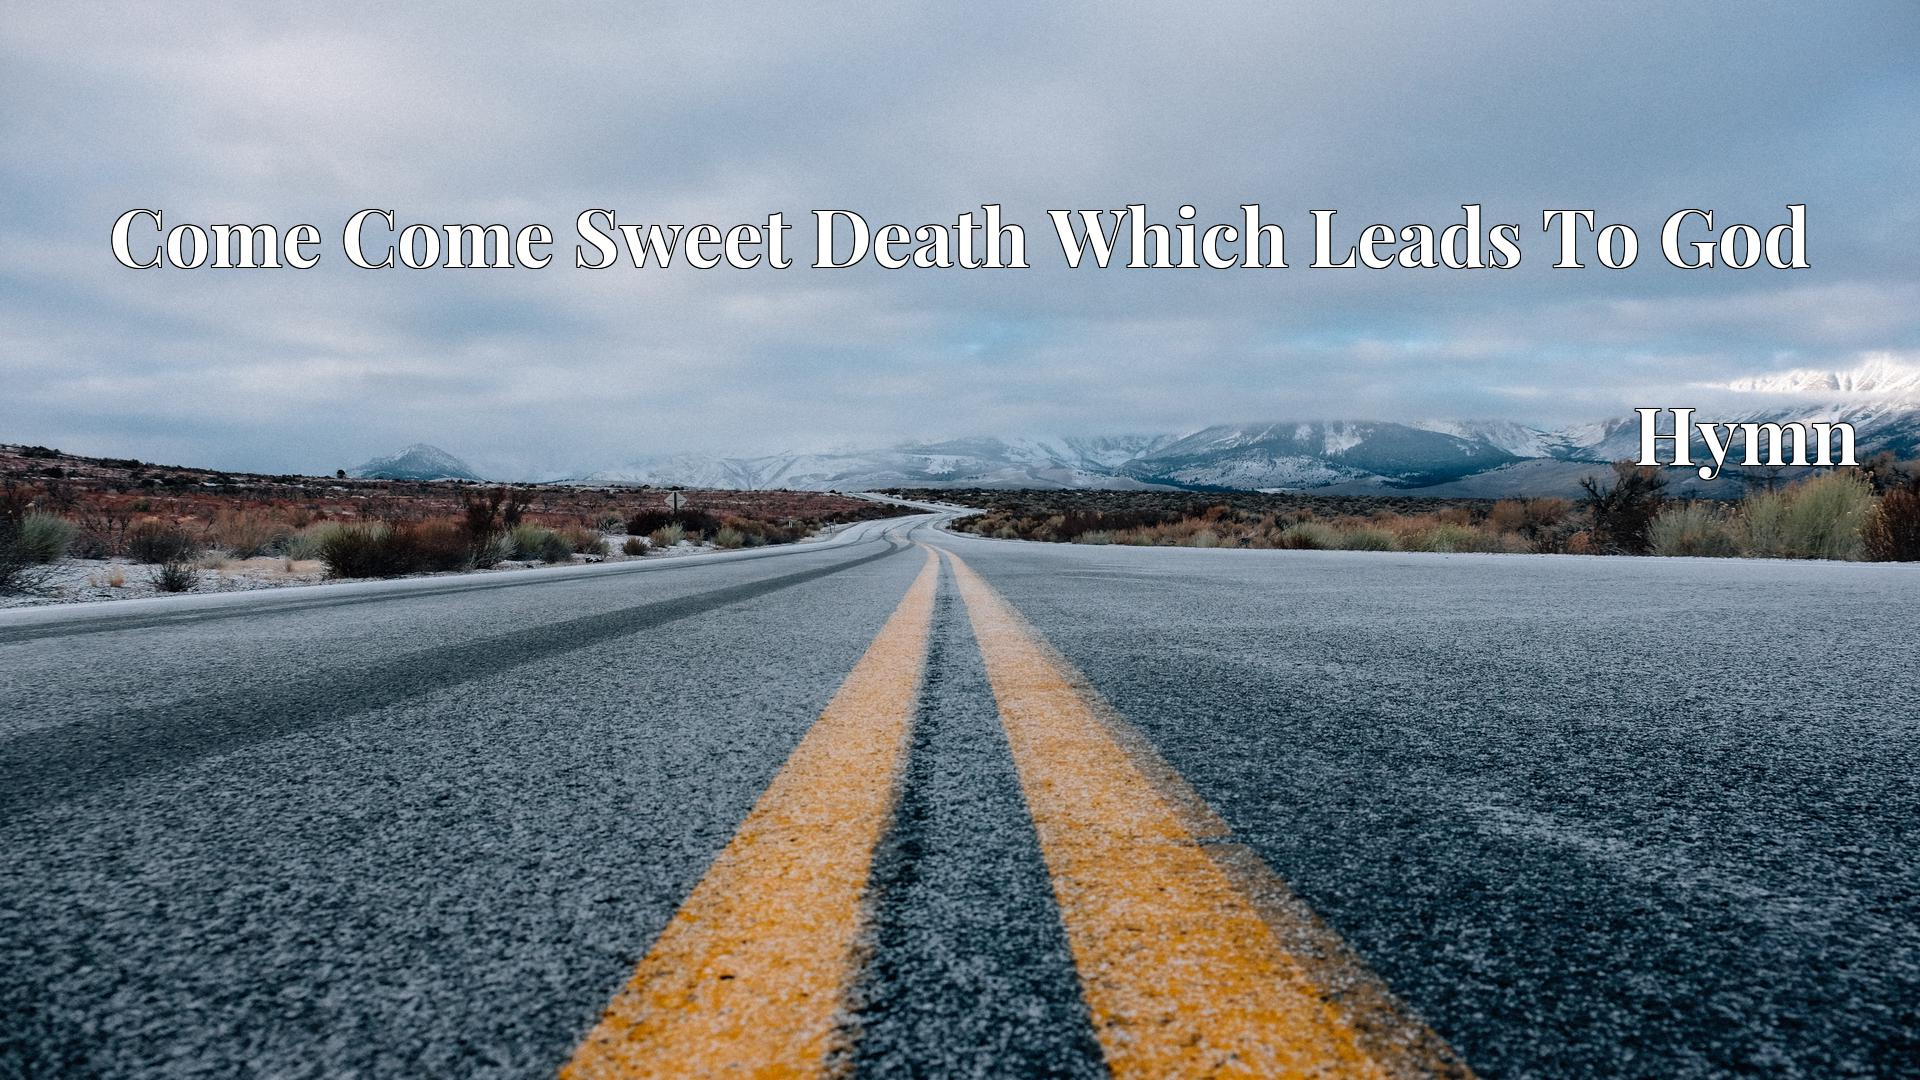 Come Come Sweet Death Which Leads To God - Hymn